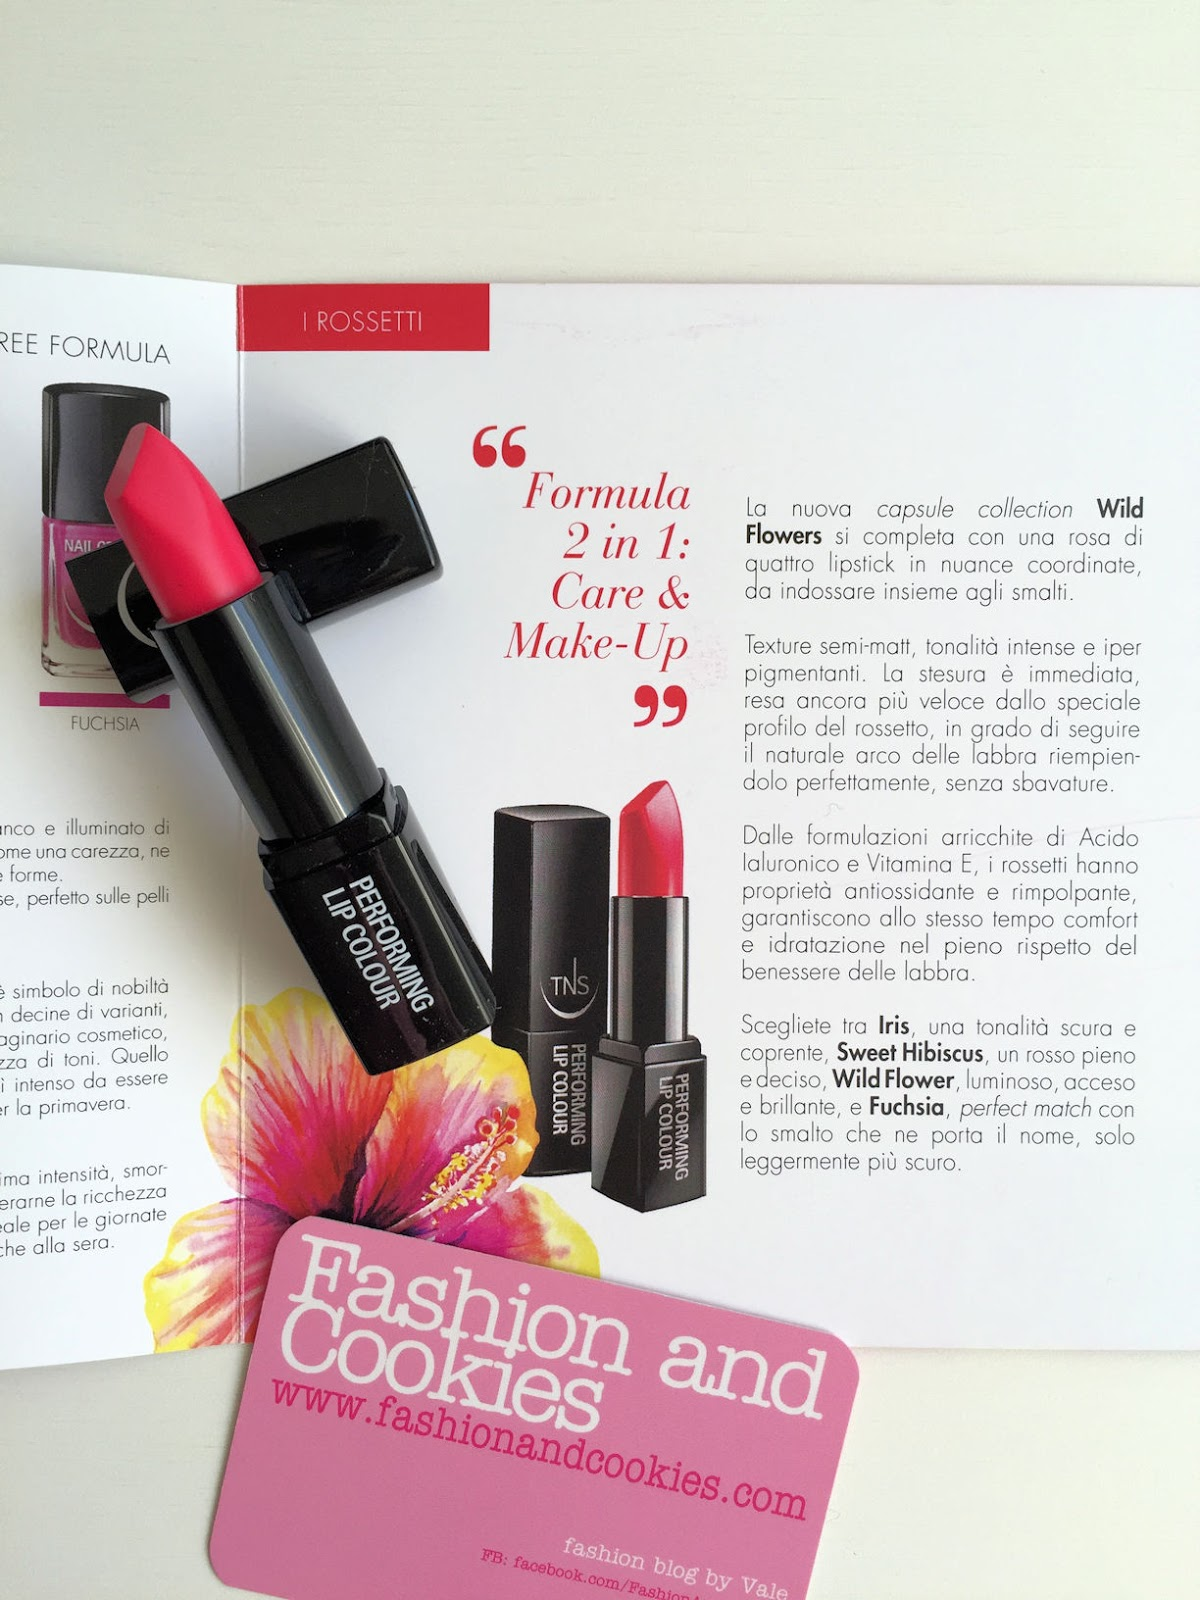 TNS Cosmetics Wild Flower lipstick review on Fashion and Cookies beauty blog, beauty blogger